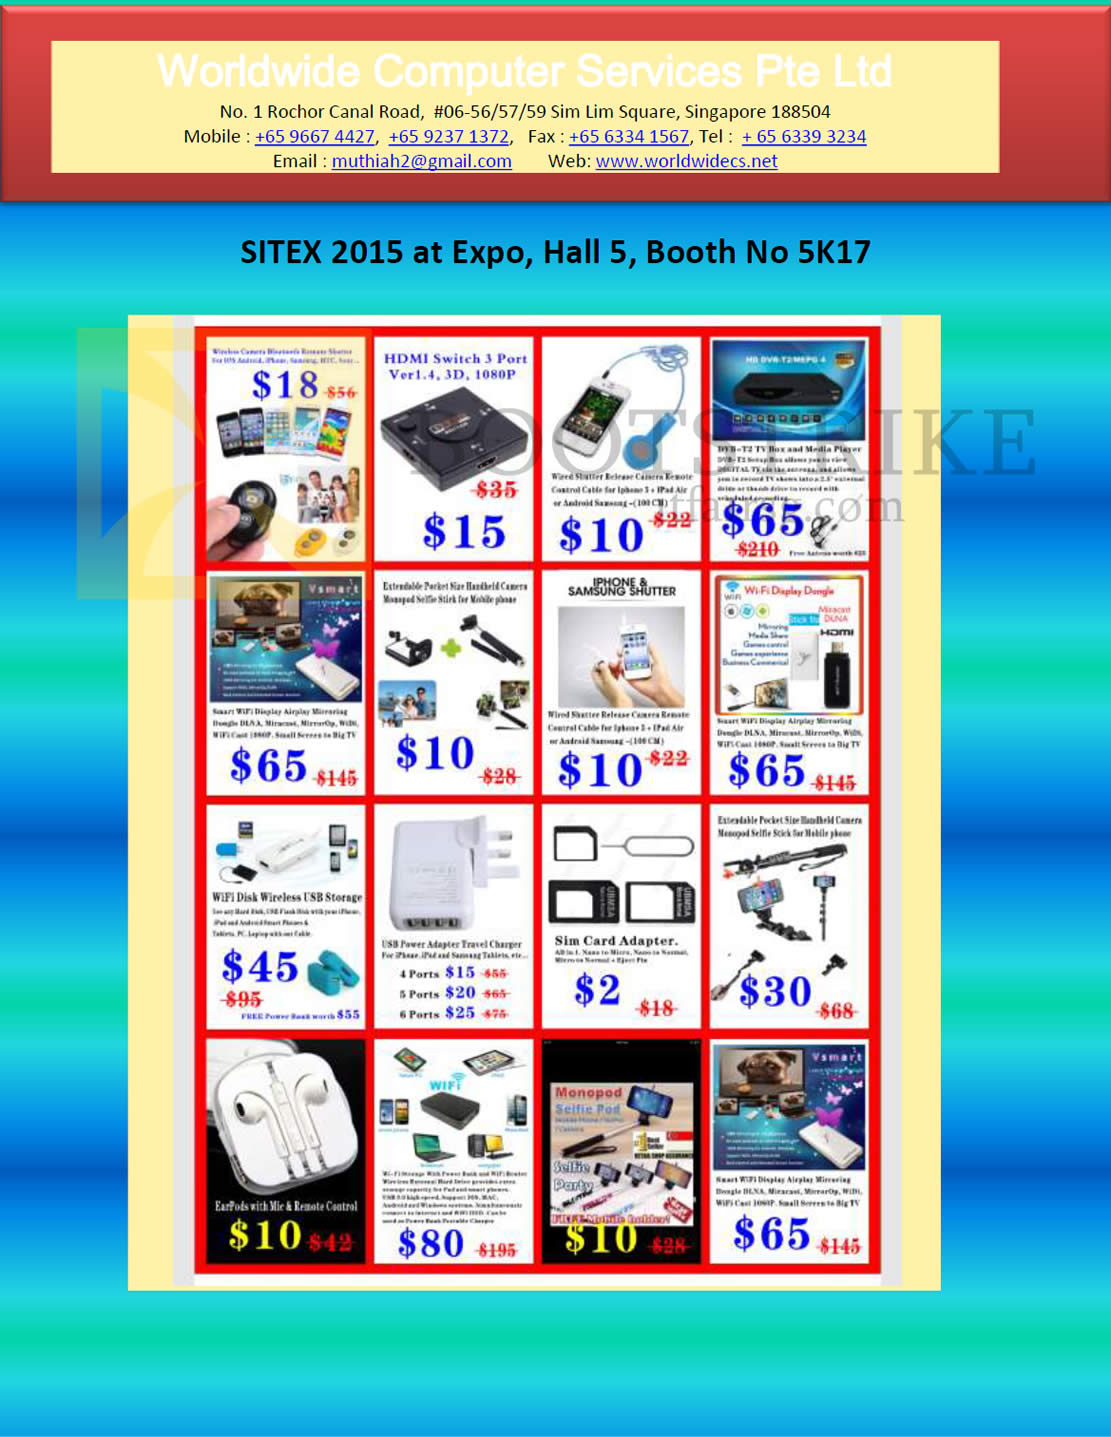 SITEX 2015 price list image brochure of Worldwide Computer Services HDMI Switch 3 Port, Wi-Fi Display Dongle, Wireless USB Storage, USB Power Adapter Travel Charger, Sim Card Adapter